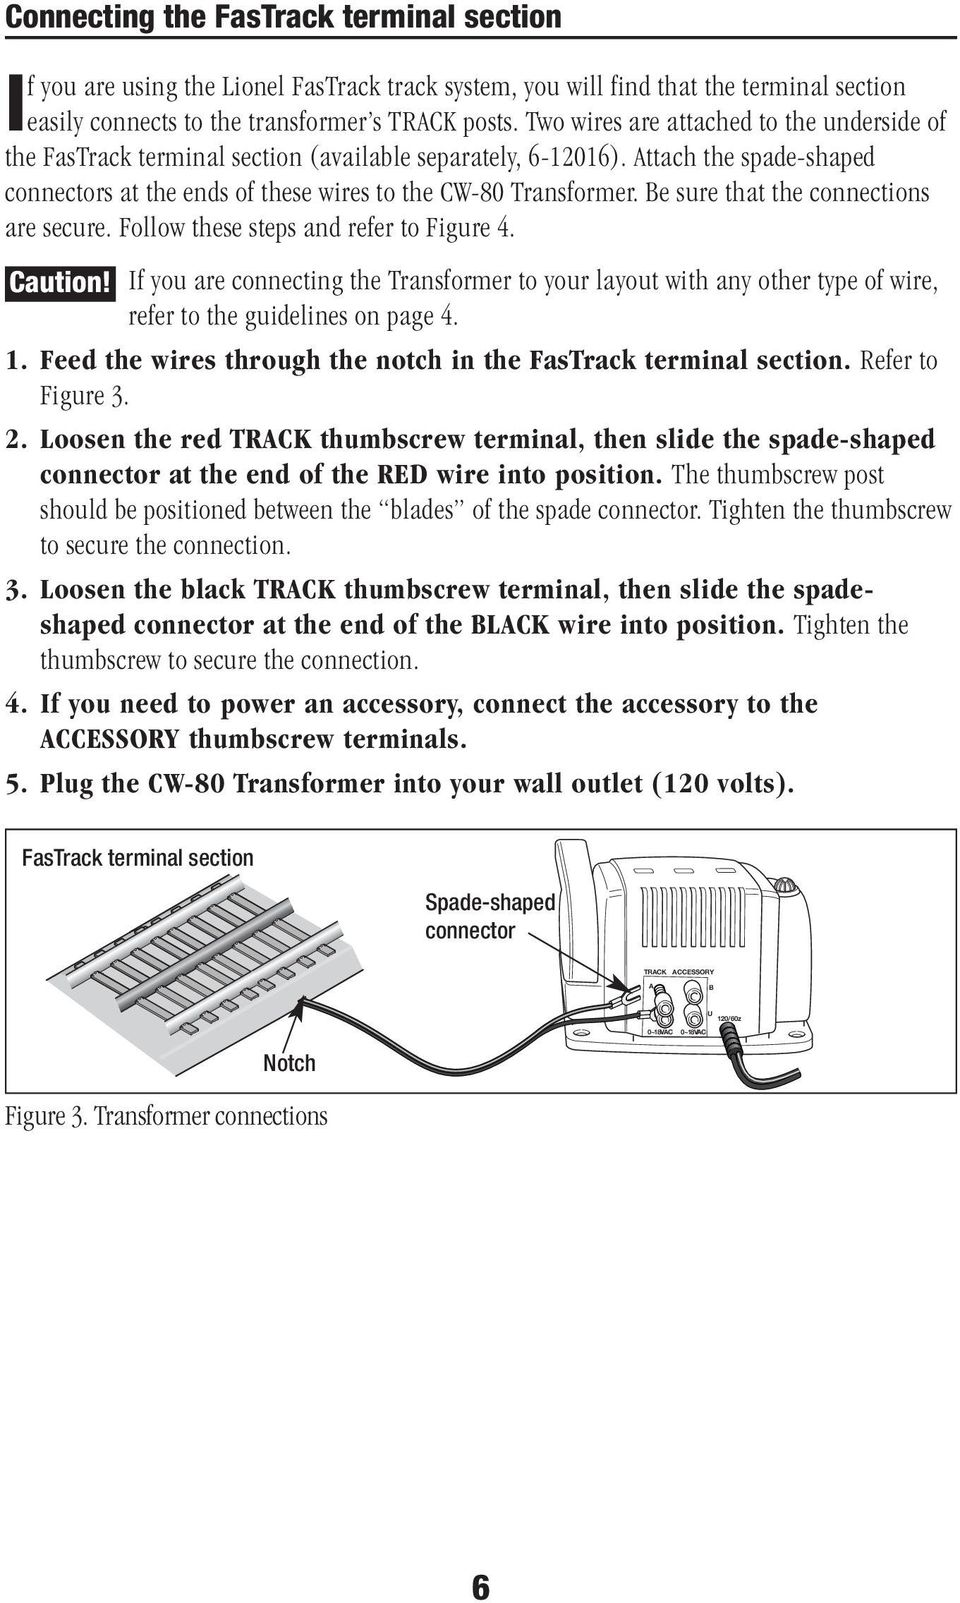 03 lionel cw 80 transformer owner s manual pdf be sure that the connections are secure follow these steps and refer to figure 4